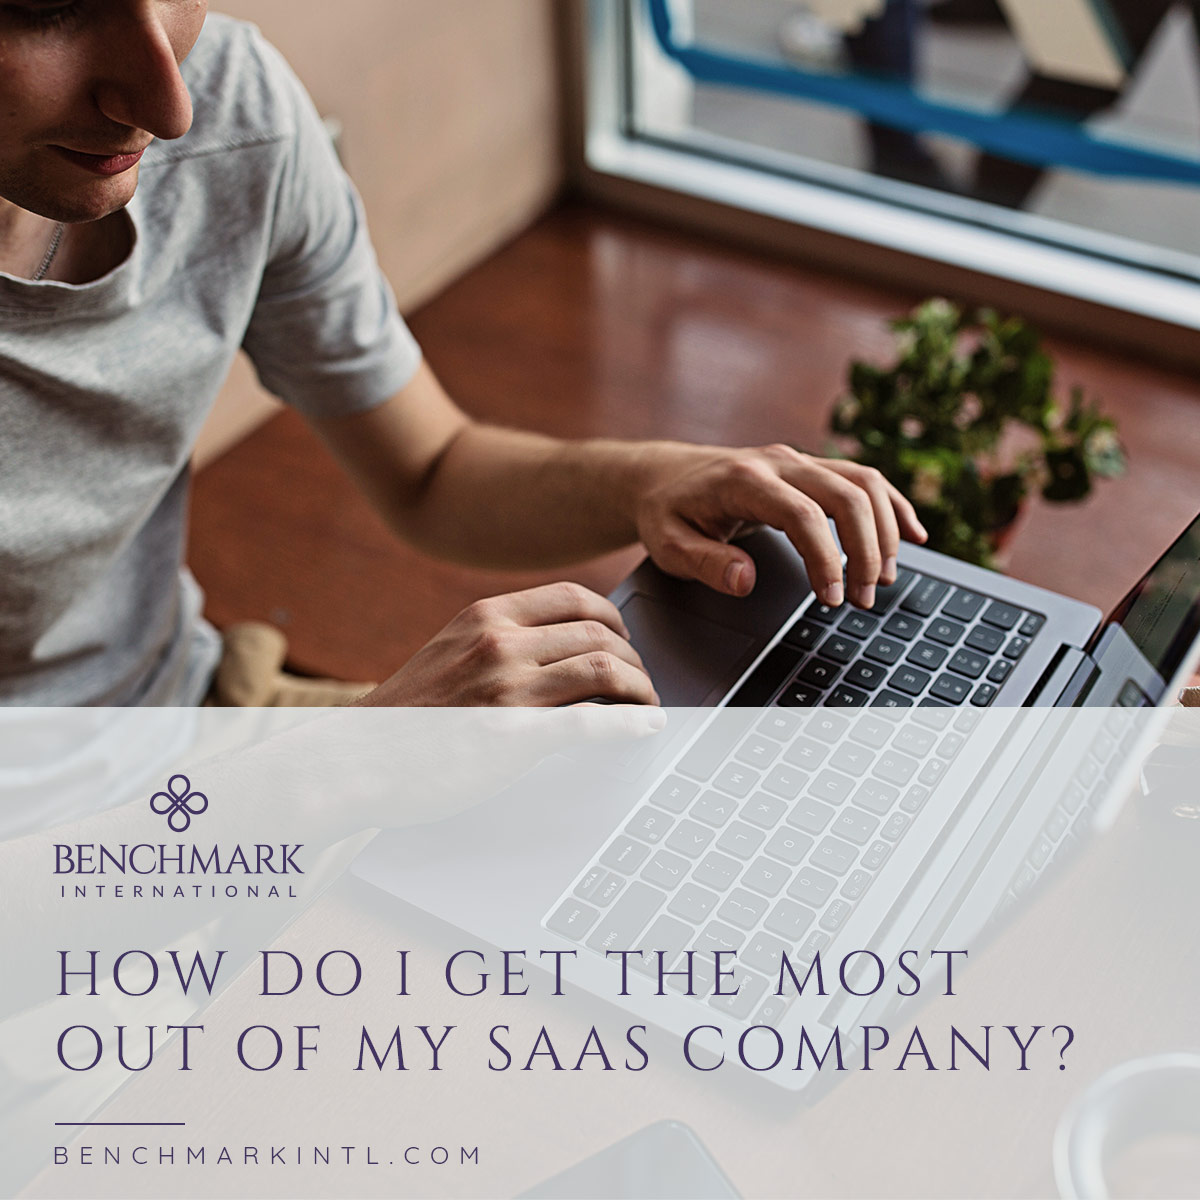 How_Do_I_Get_The_Most_Out_Of_My_Saas_Company_Blog_Social